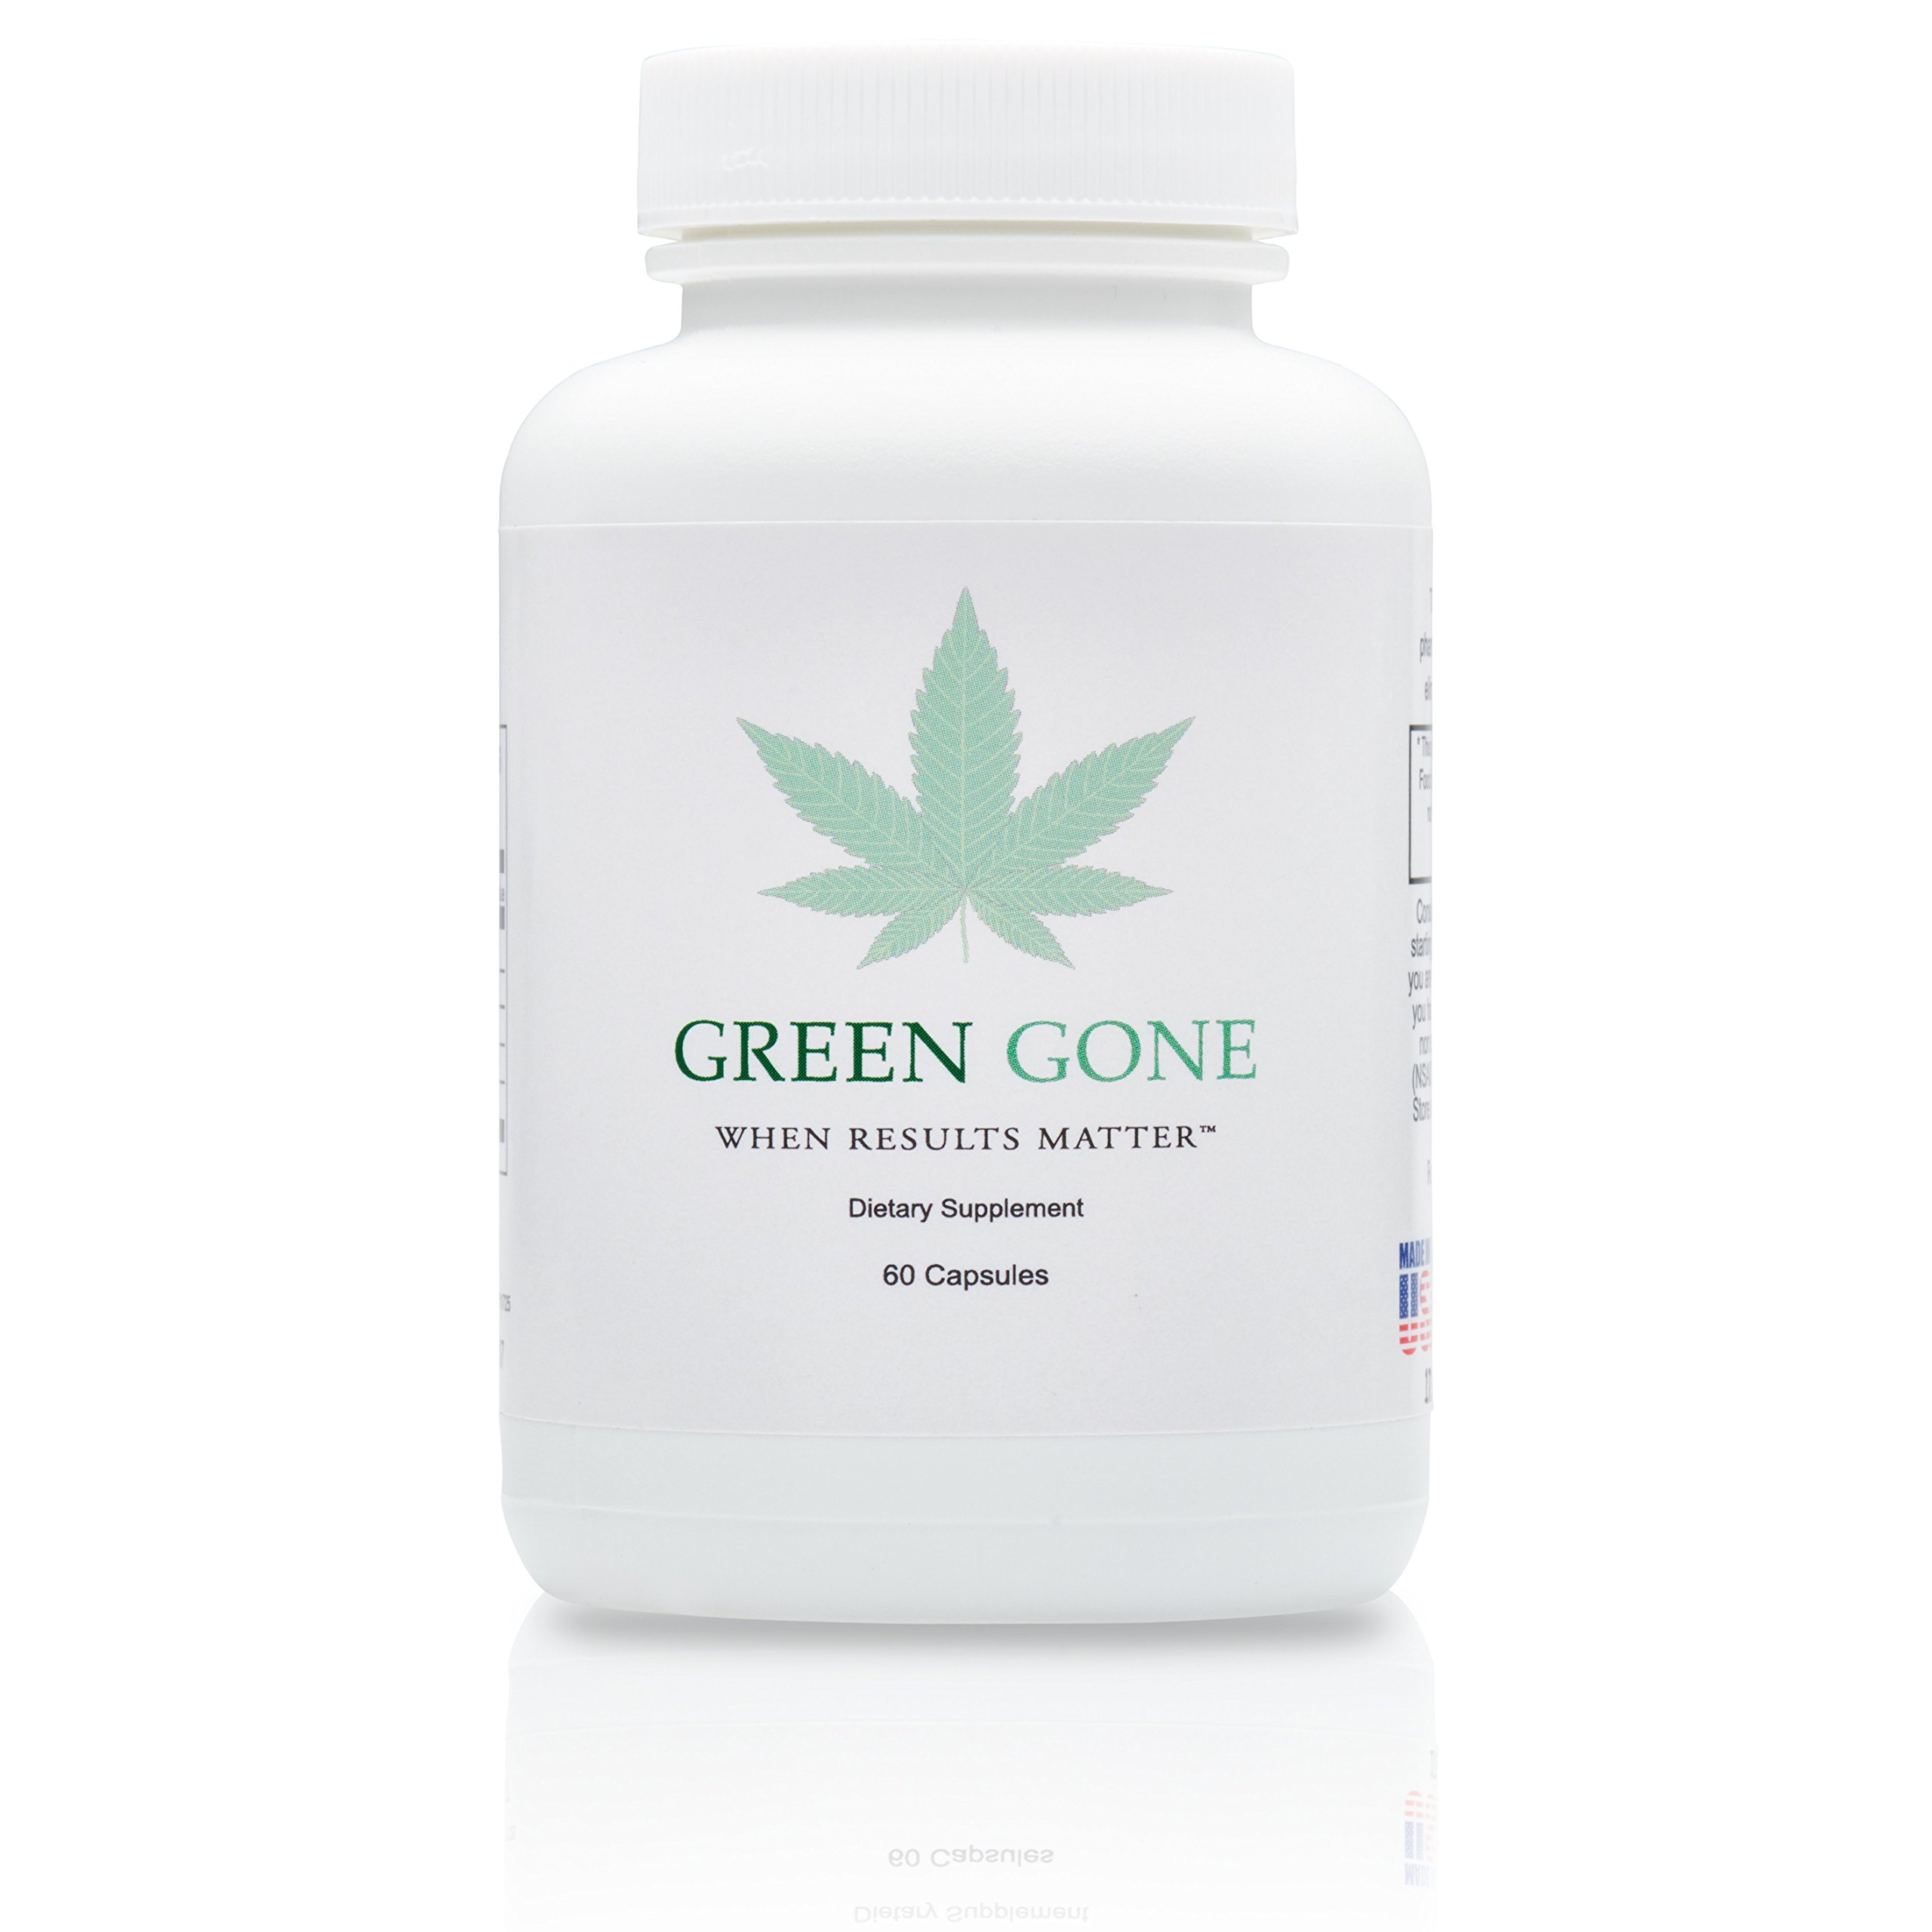 Green Gone 5 Day THC (Marijuana) Detox Kit - Permanent Cleanse, with 5 Free THC Test Strips! by Green Gone LLC (Image #1)